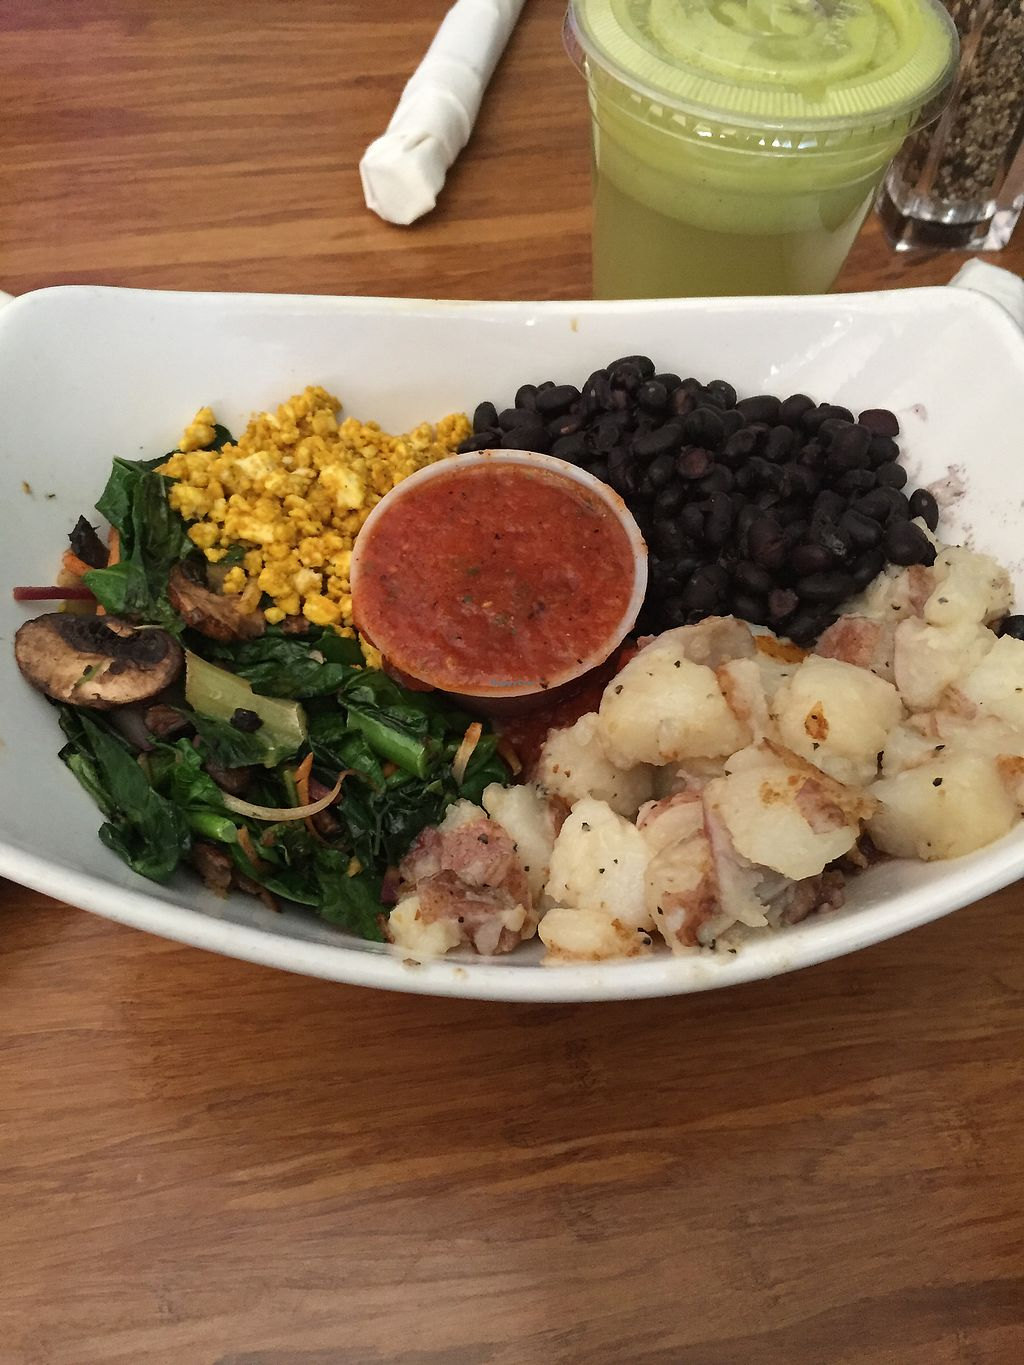 "Photo of Palm Greens Cafe  by <a href=""/members/profile/R-MV"">R-MV</a> <br/>Breakfast Bowl  <br/> August 9, 2017  - <a href='/contact/abuse/image/15008/290839'>Report</a>"